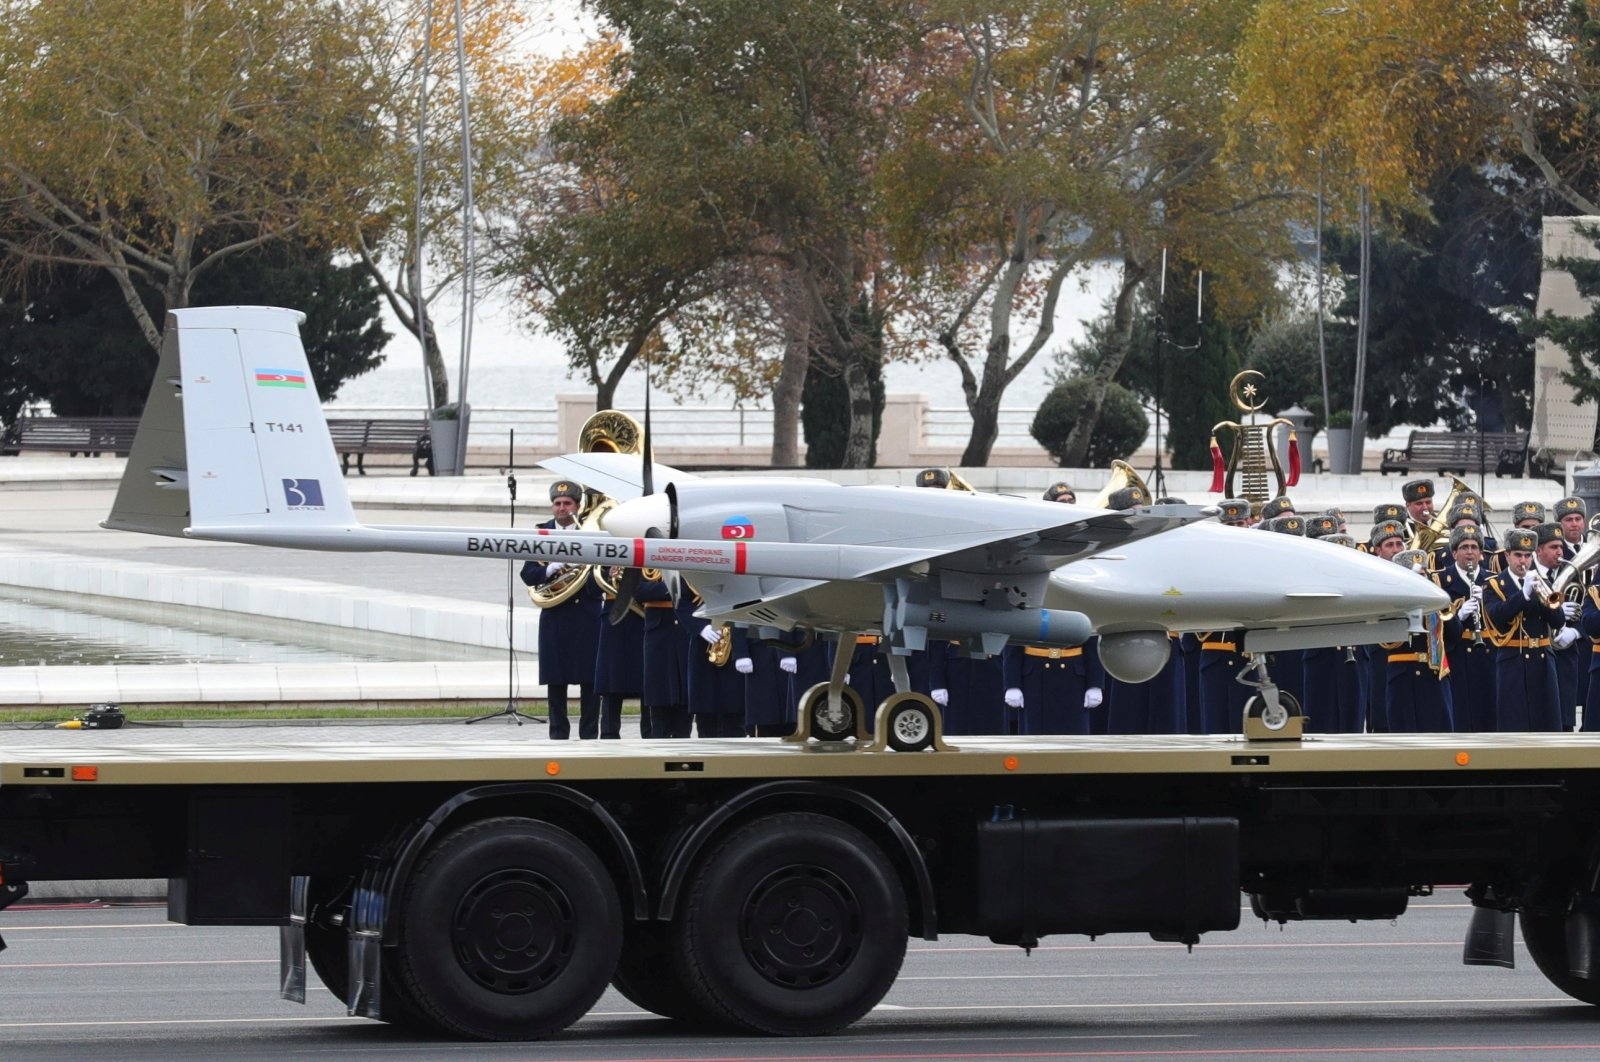 An Azerbaijan army-owned Bayraktar TB2 UCAV is displayed during a military parade to mark the victory in the Nagorno-Karabakh conflict, in Baku, Azerbaijan, Dec. 10, 2020. (Photo by Turkey's Presidential Press Office via Reuters)